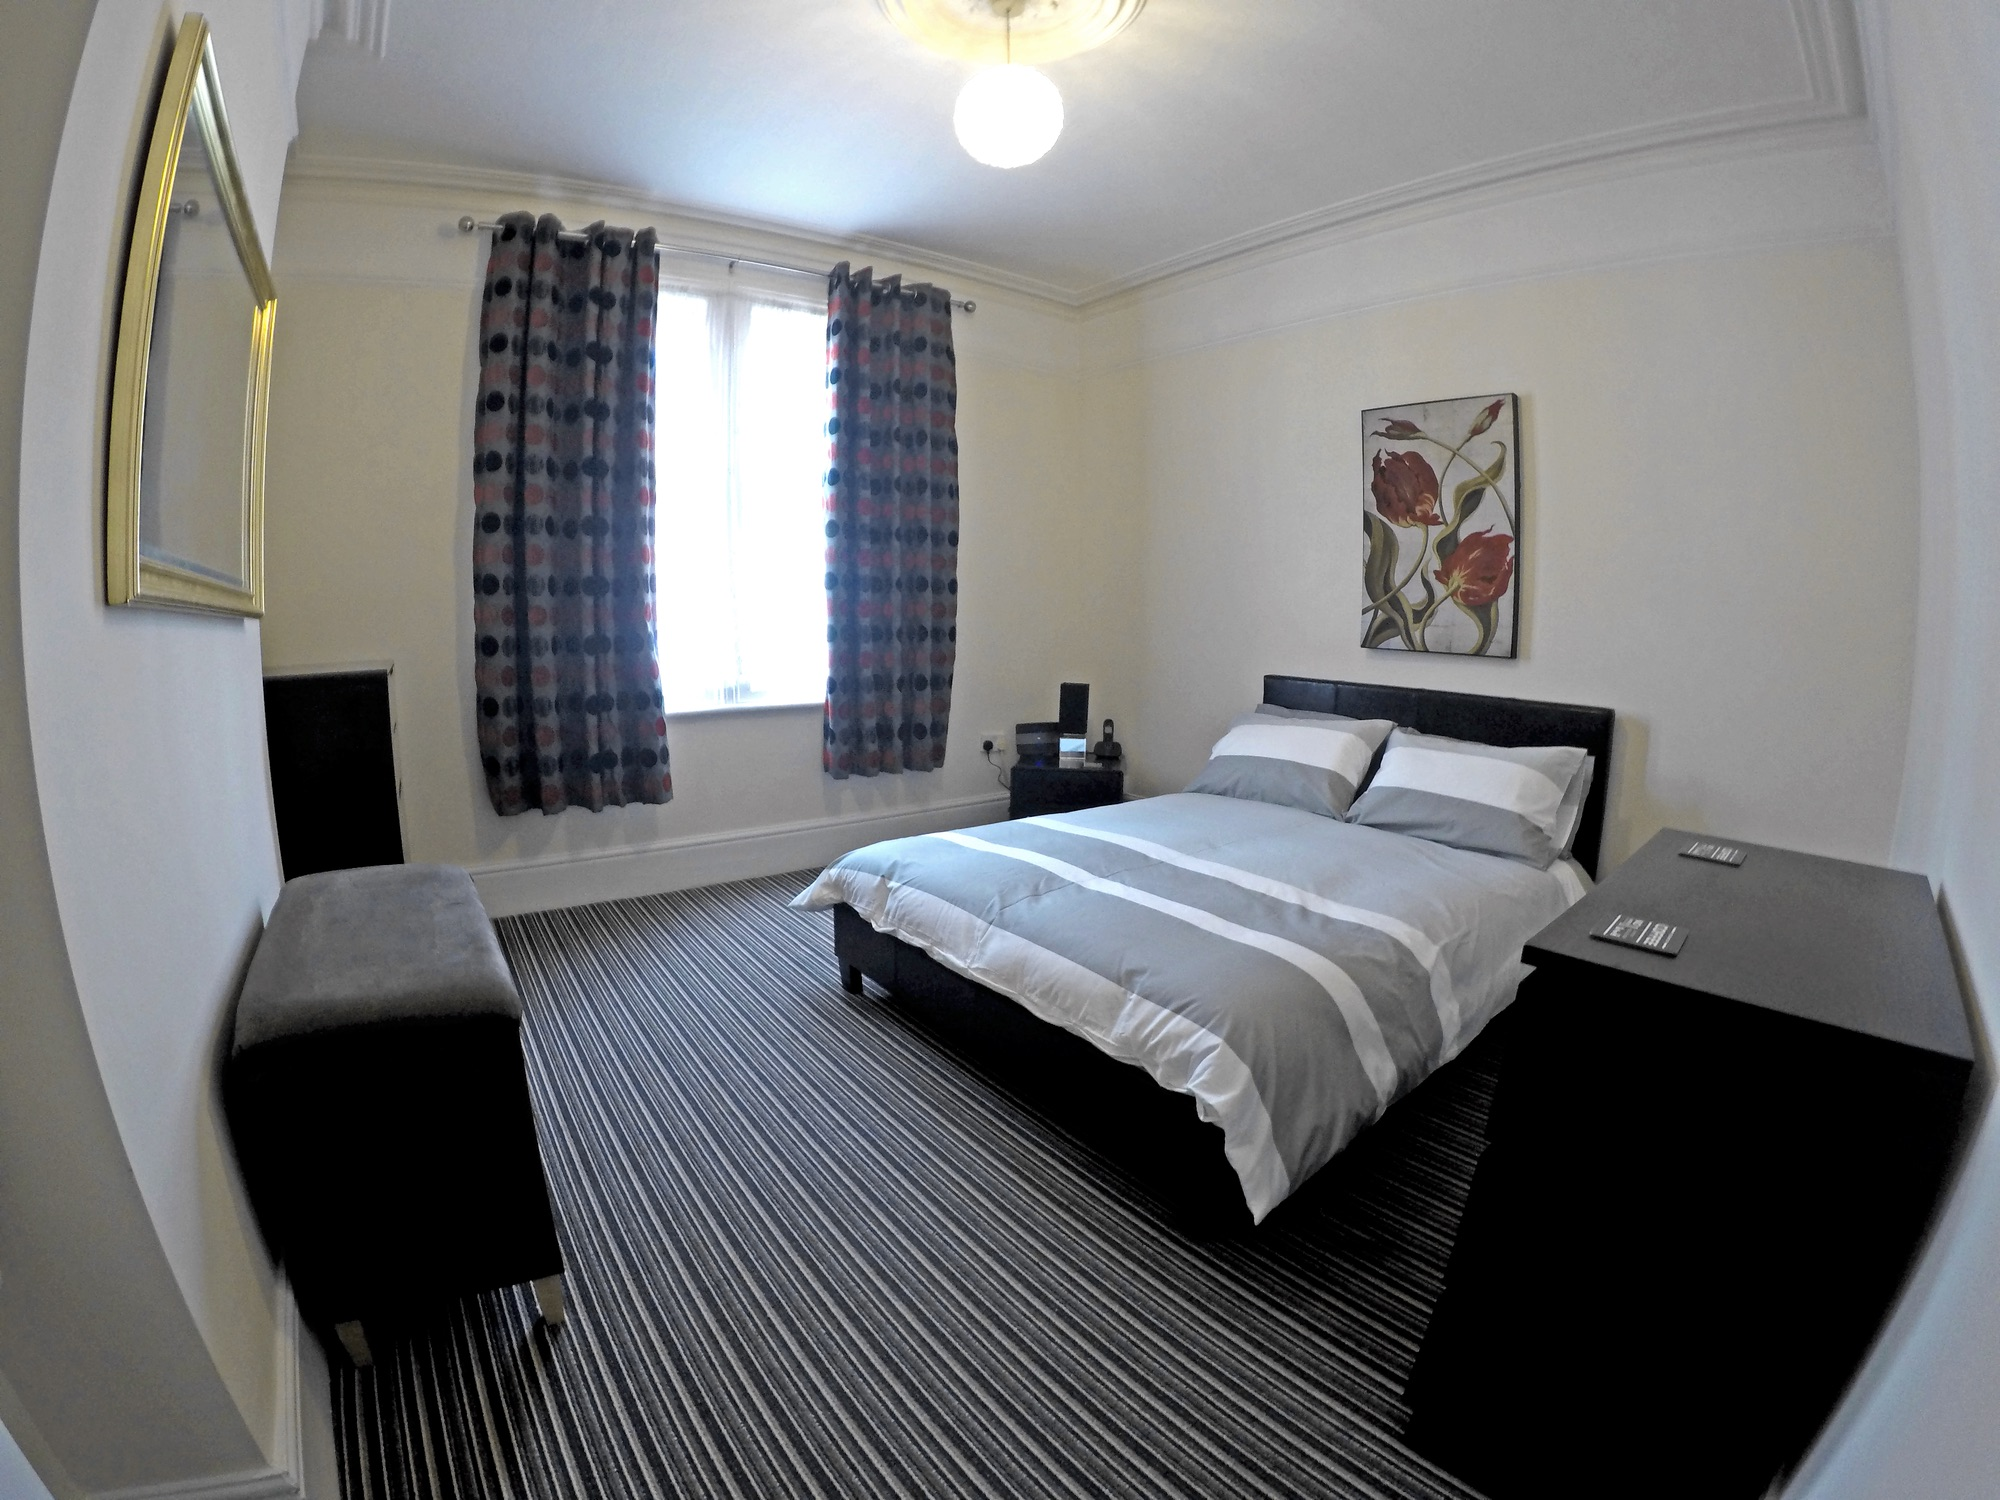 swinburne-housing-bedroom